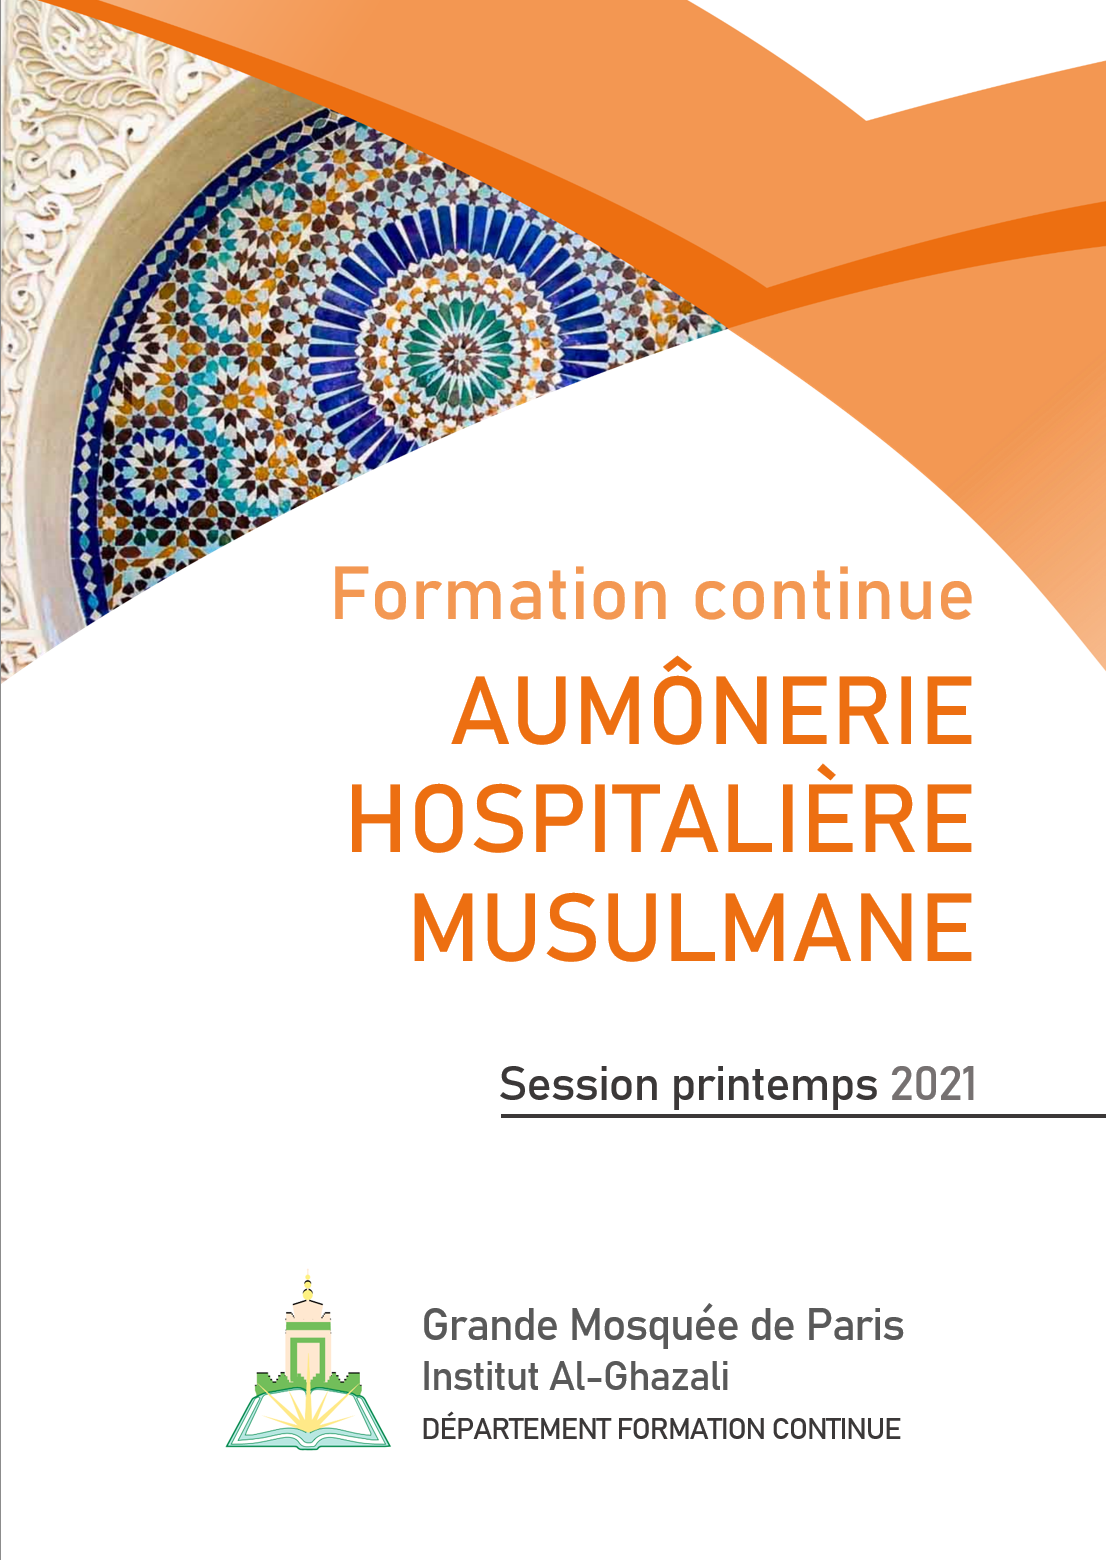 Formation aumonerie page 1